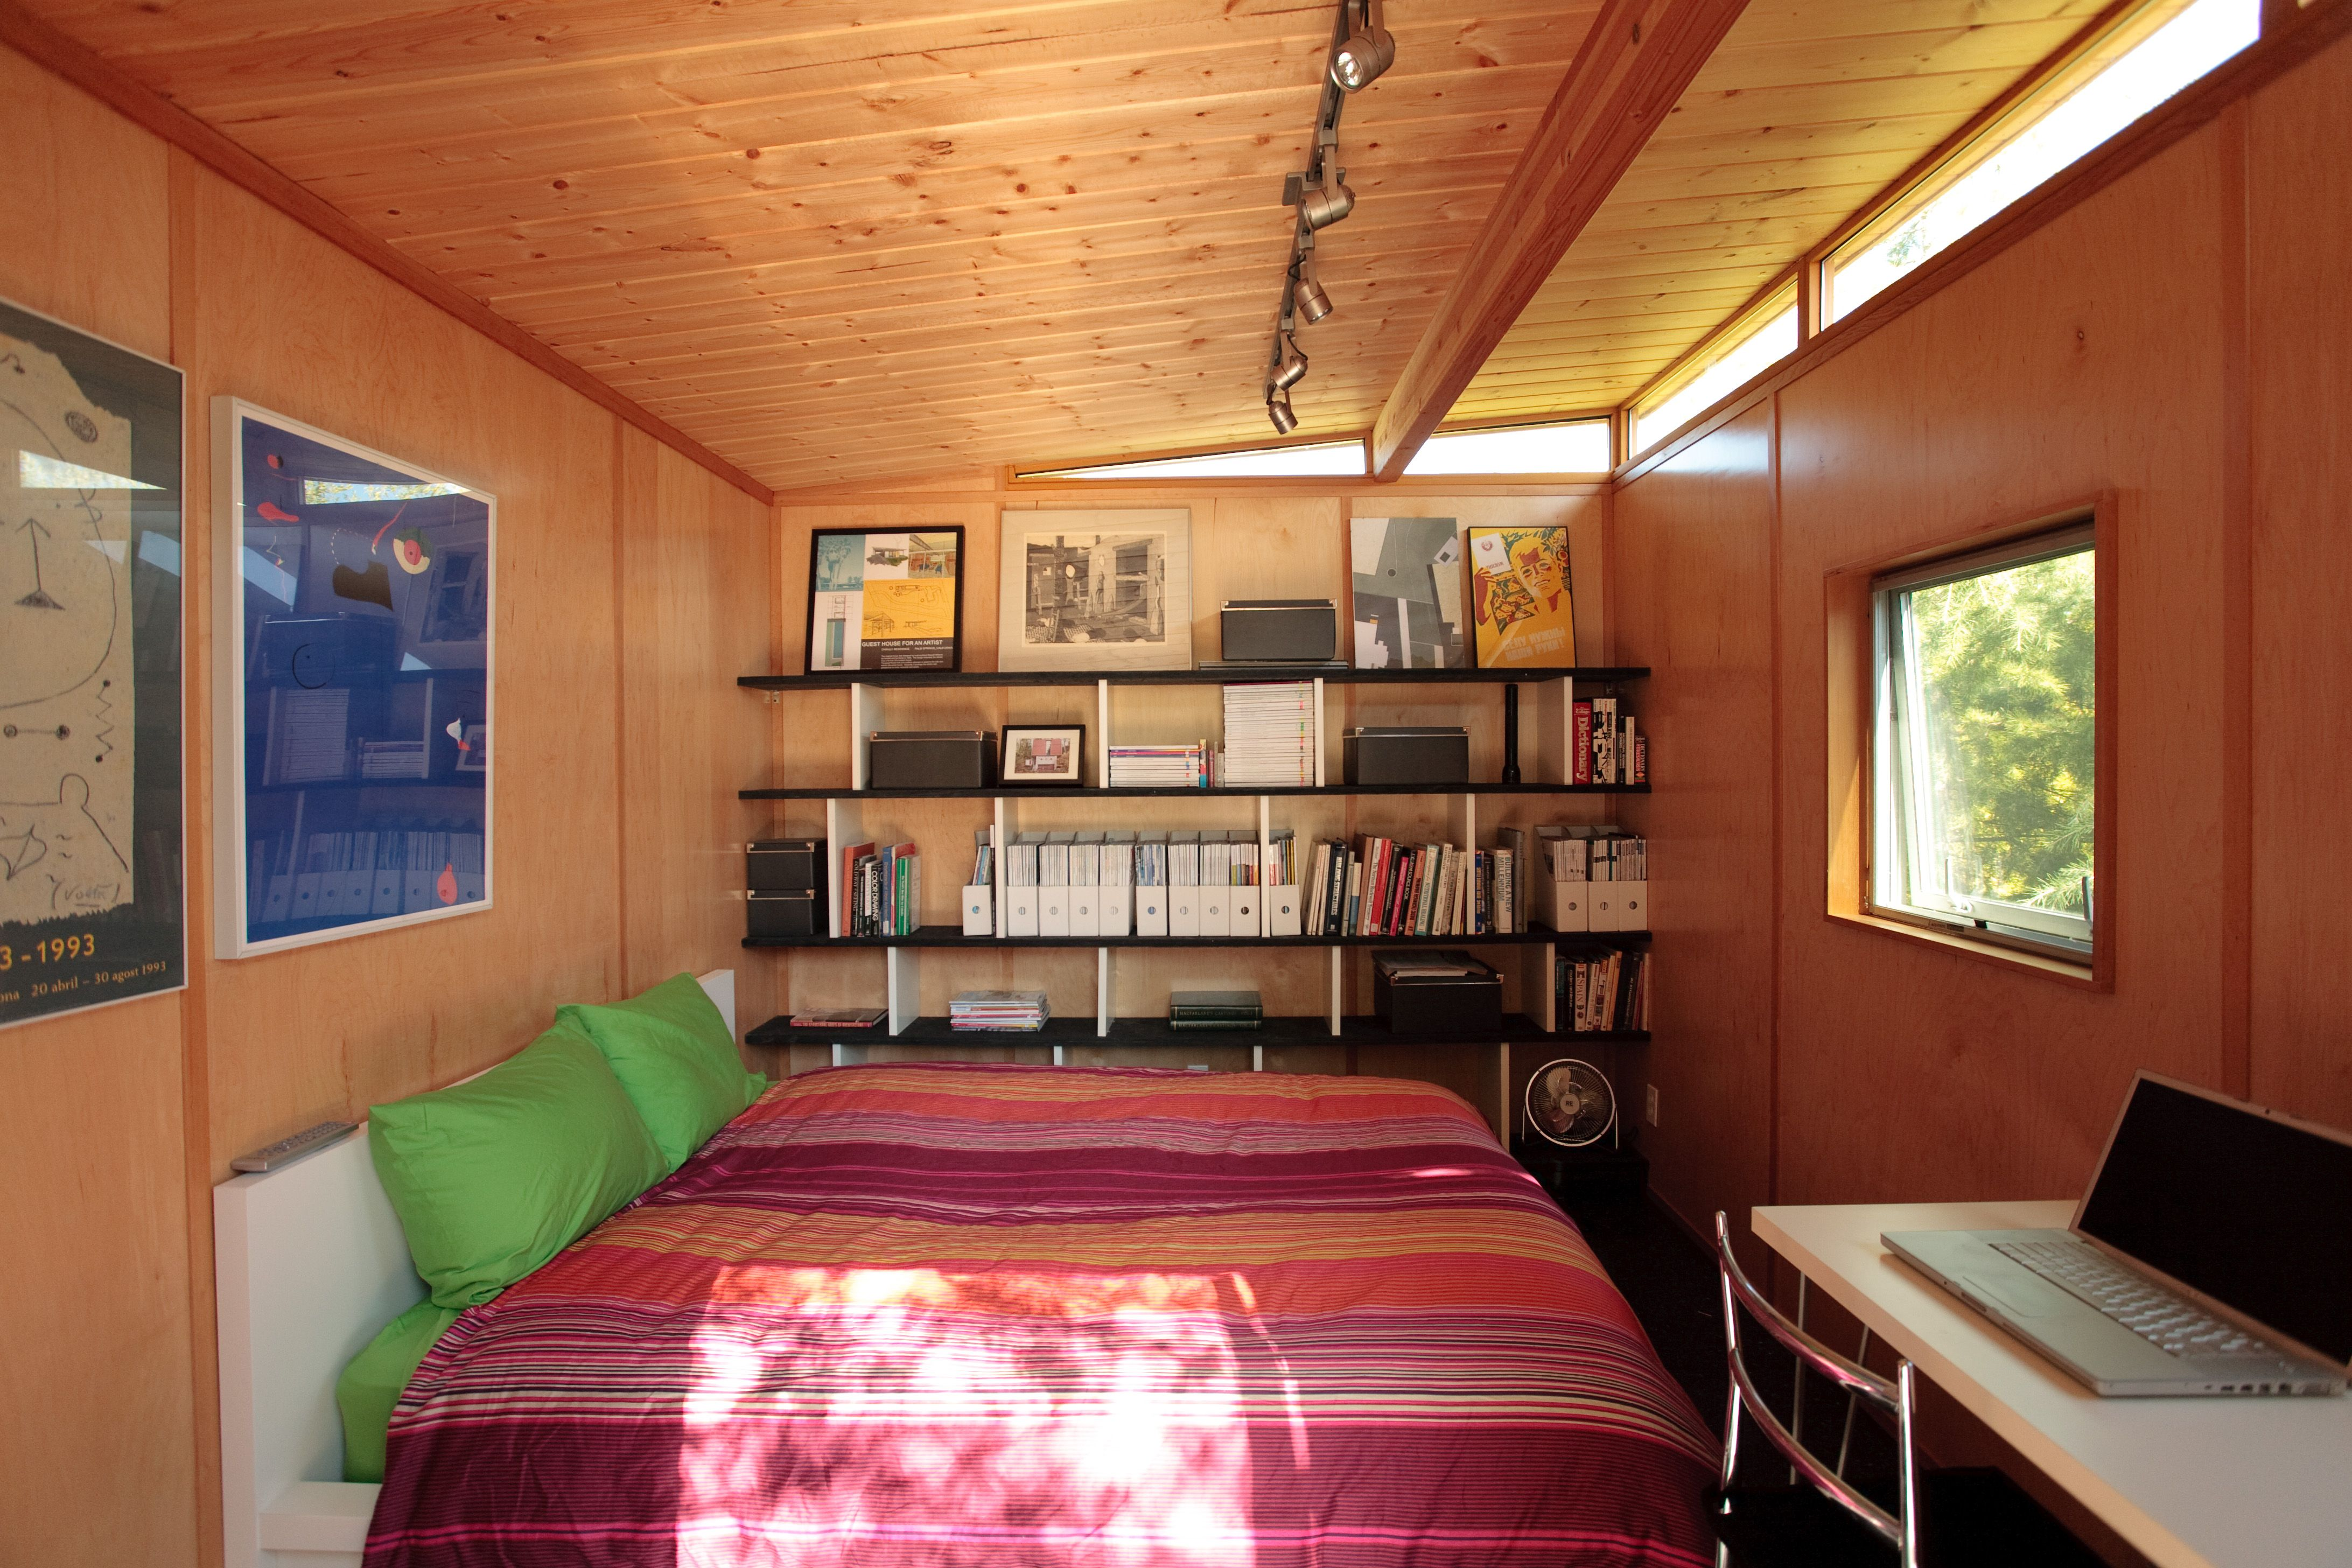 Modern-Shed - Extra bedroom for guests | That Studio Life ...